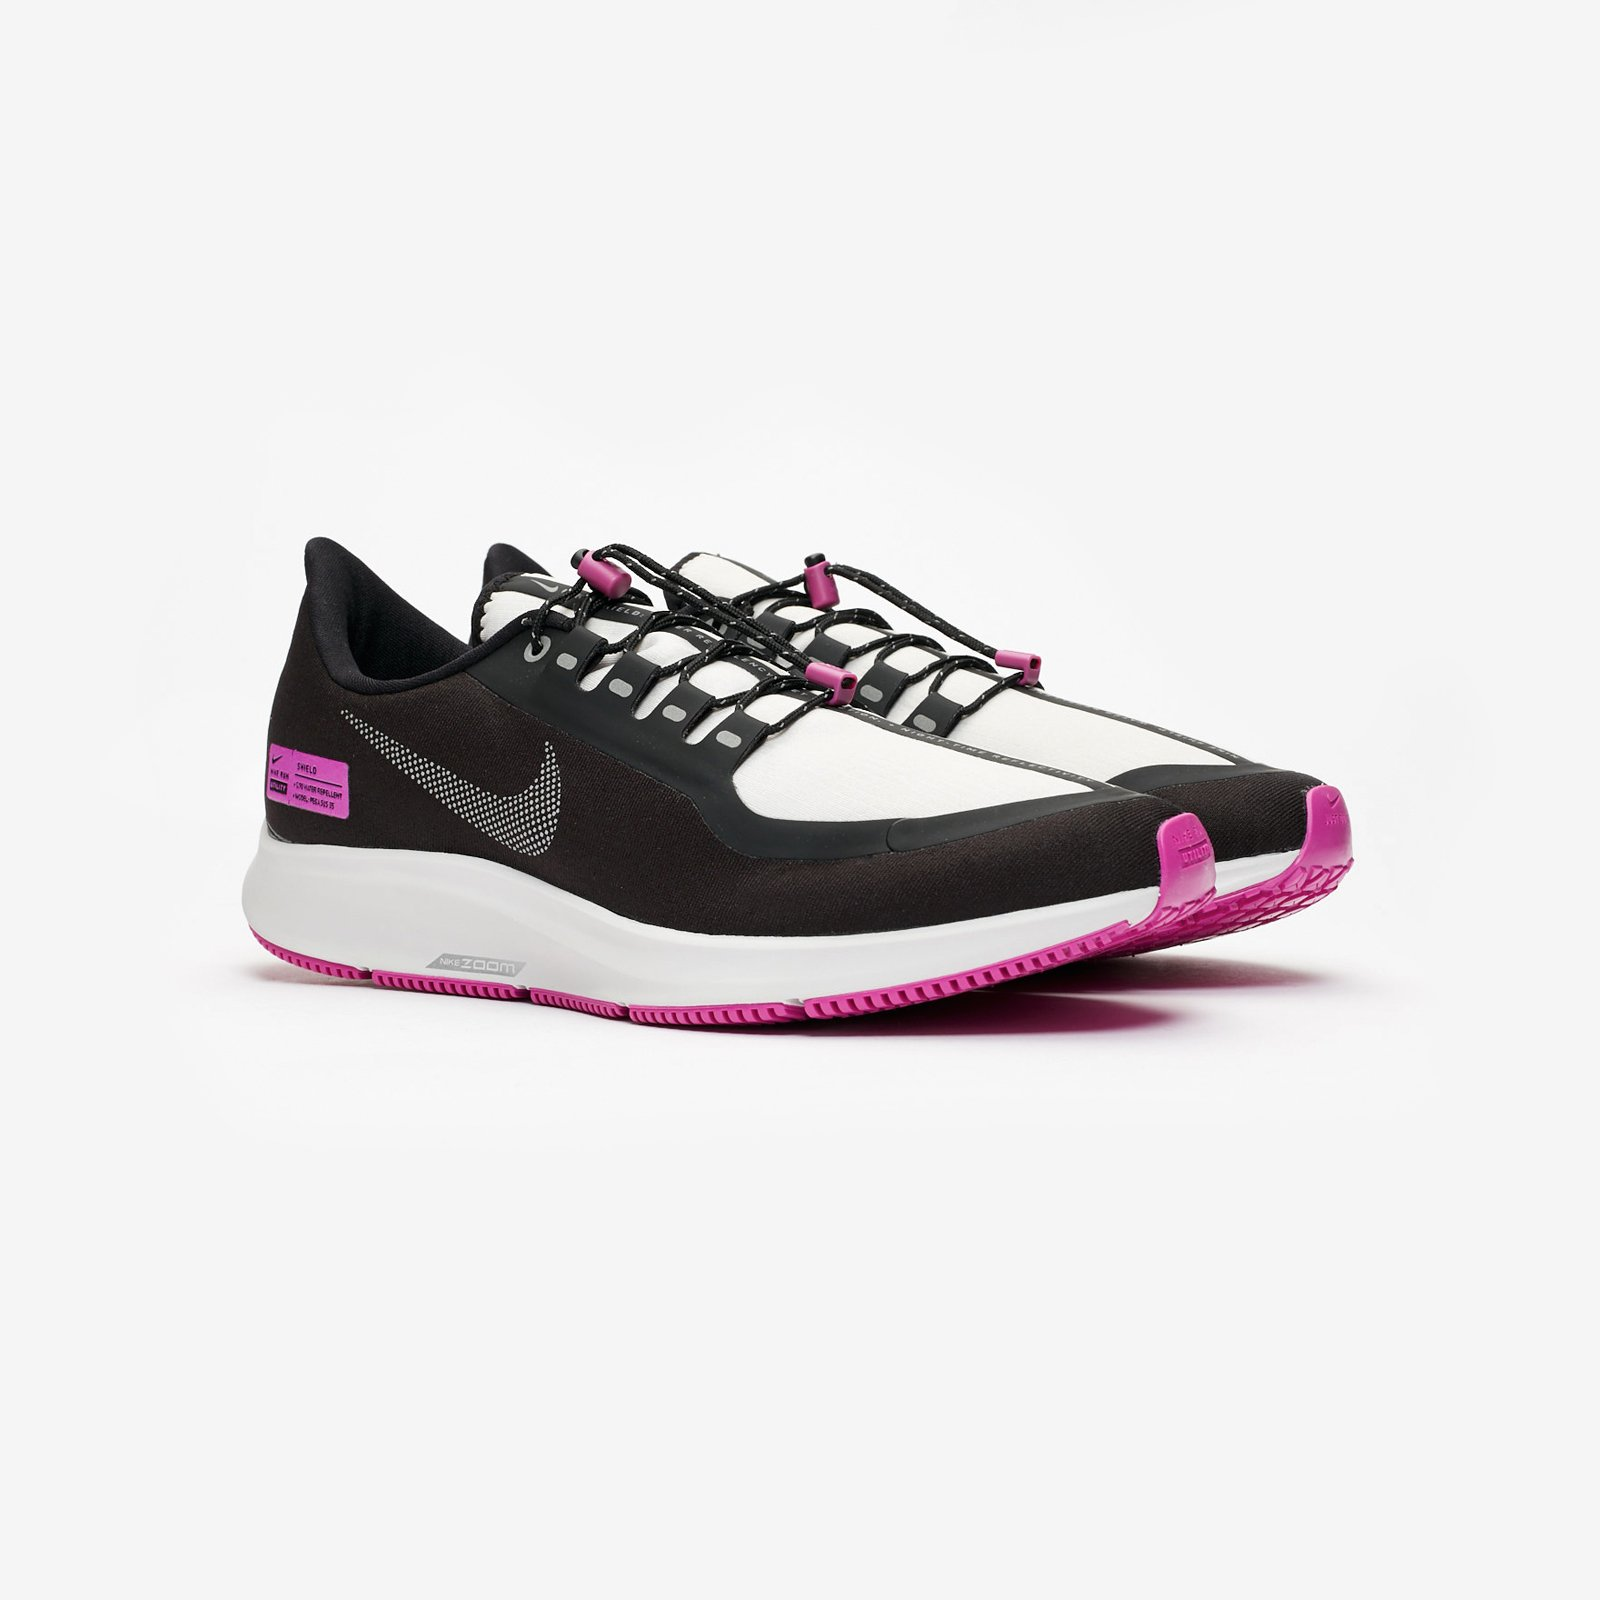 65266662ef24 Nike Air Zoom Pegasus 35 Shield NRG - Bq9779-001 - Sneakersnstuff ...